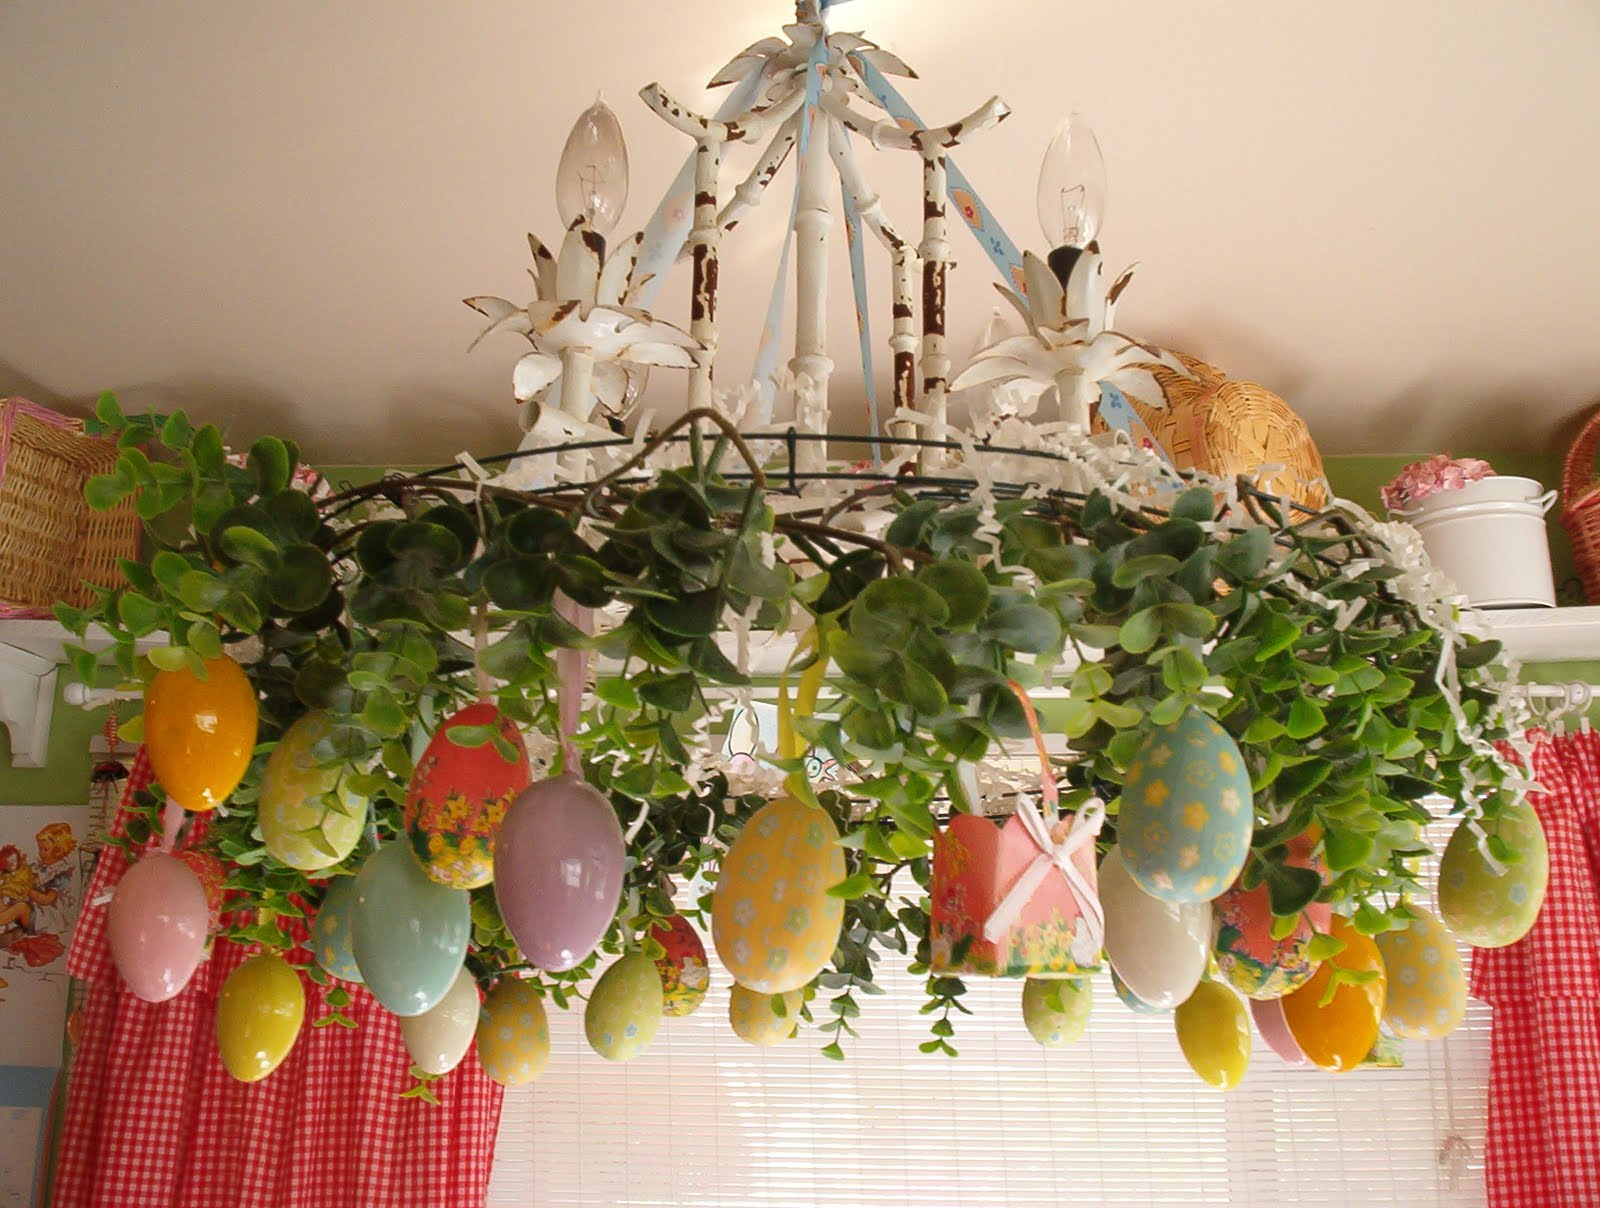 Easter decorations 2017 grasscloth wallpaper for Home easter decorations